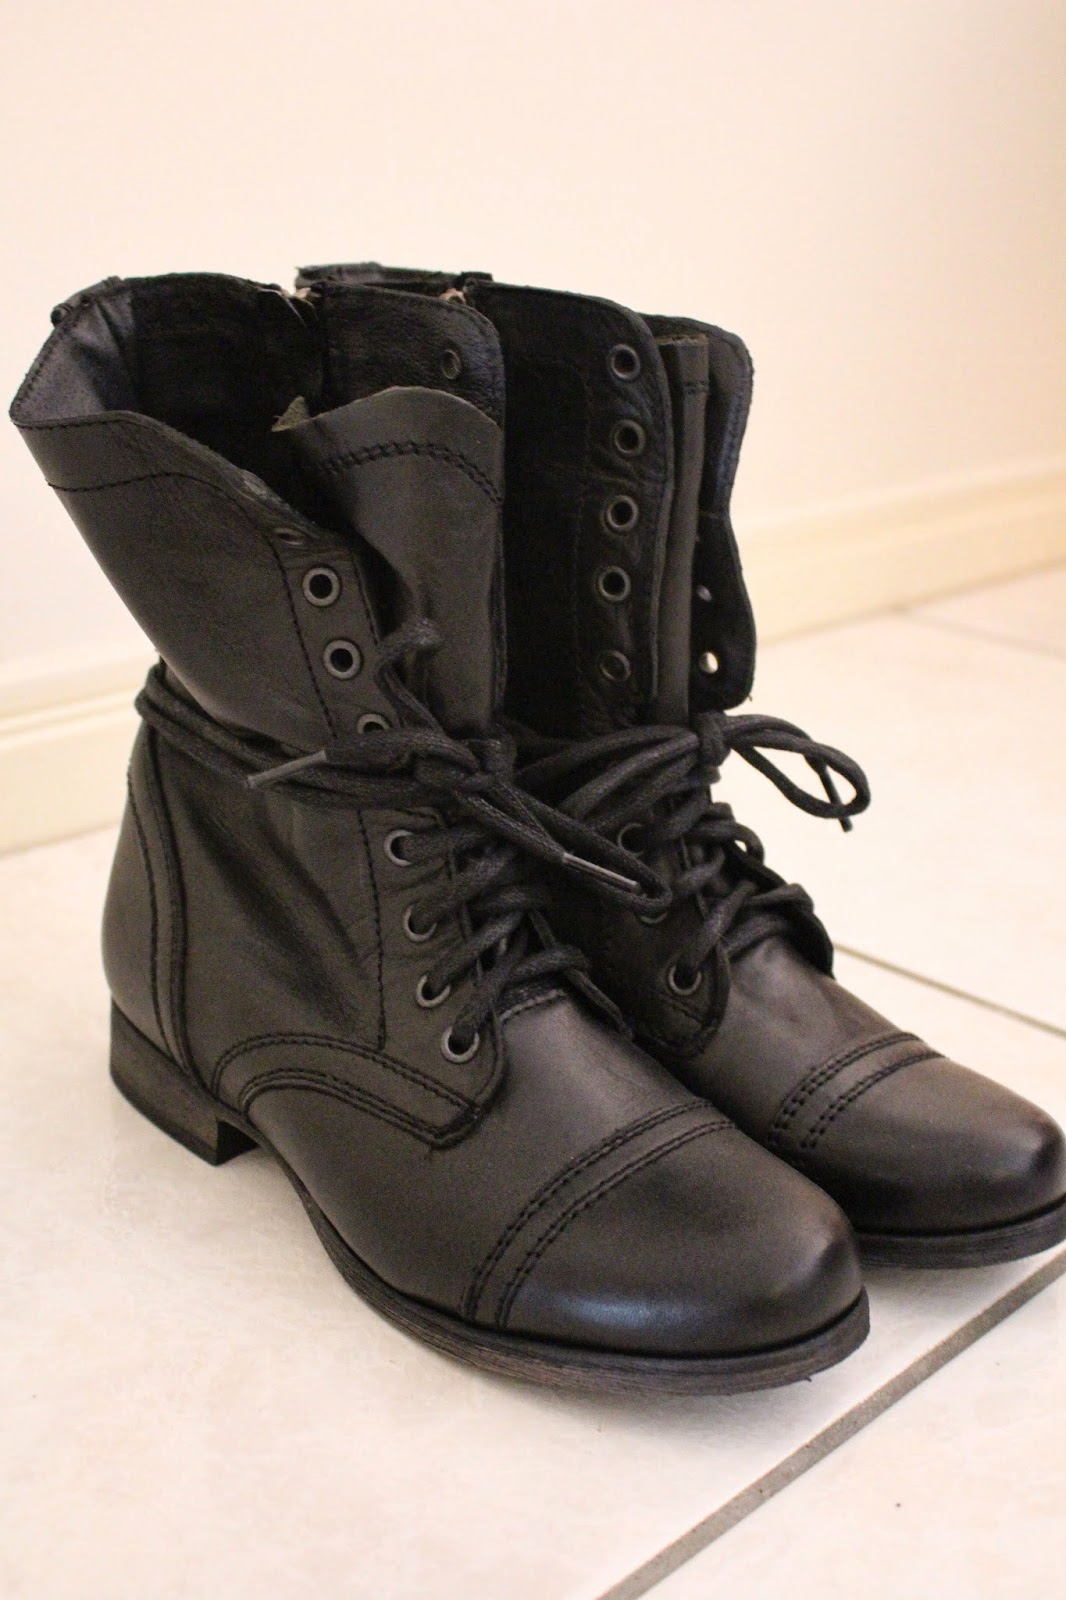 steve madden troopa boots, black and brown combat boots, combat boots, steve madden, troopa boots